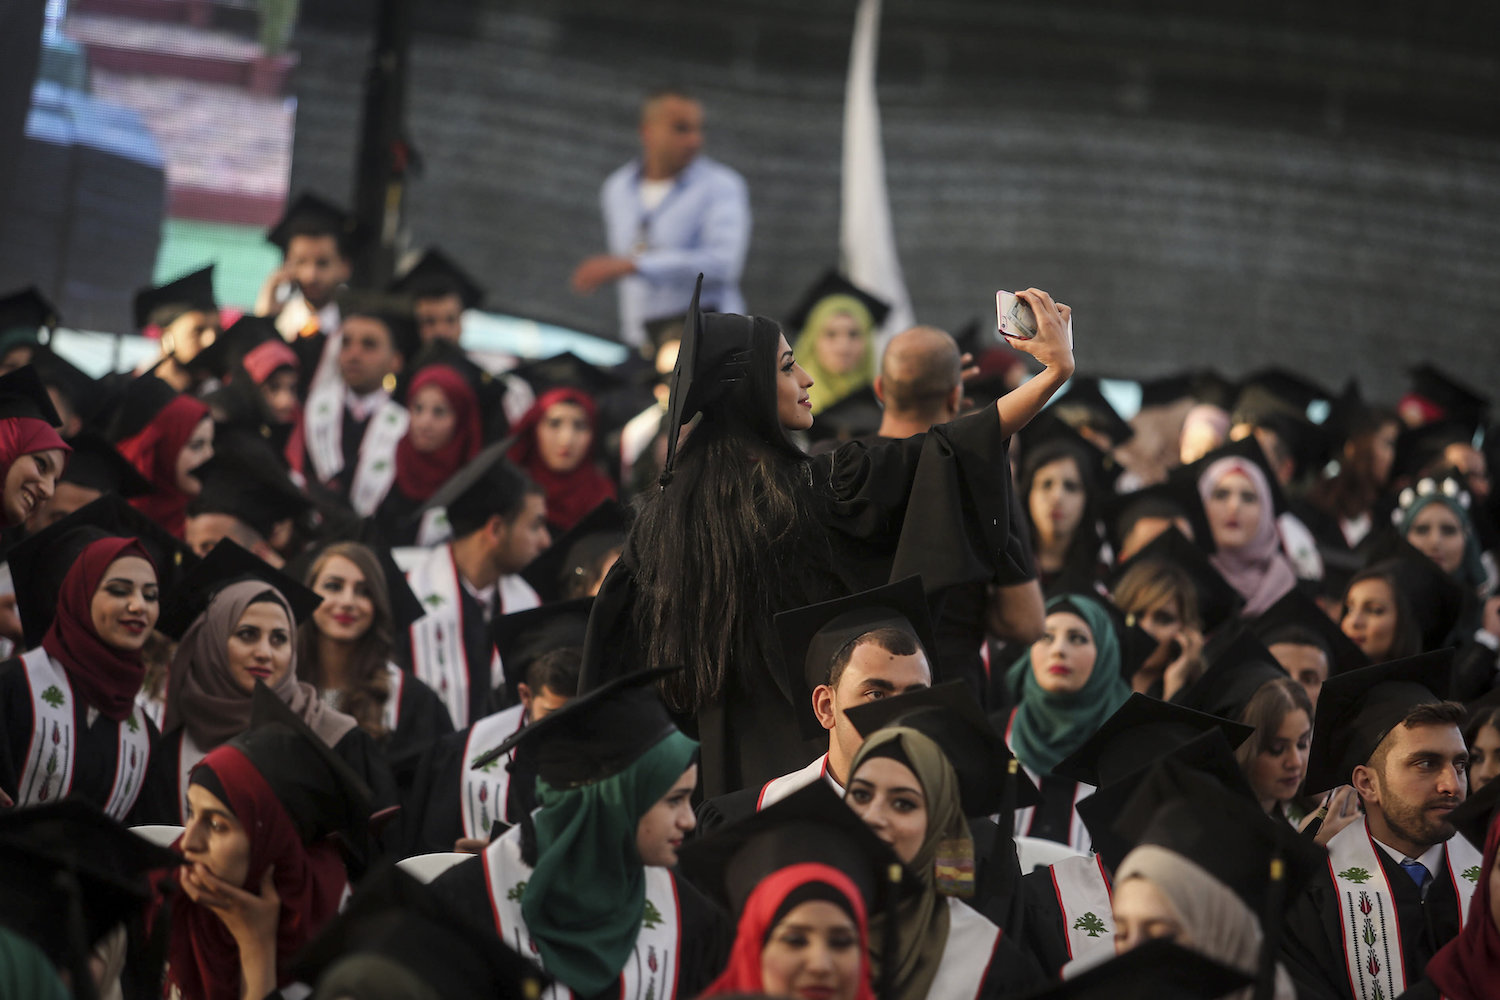 Israel is turning Palestinian students into criminals